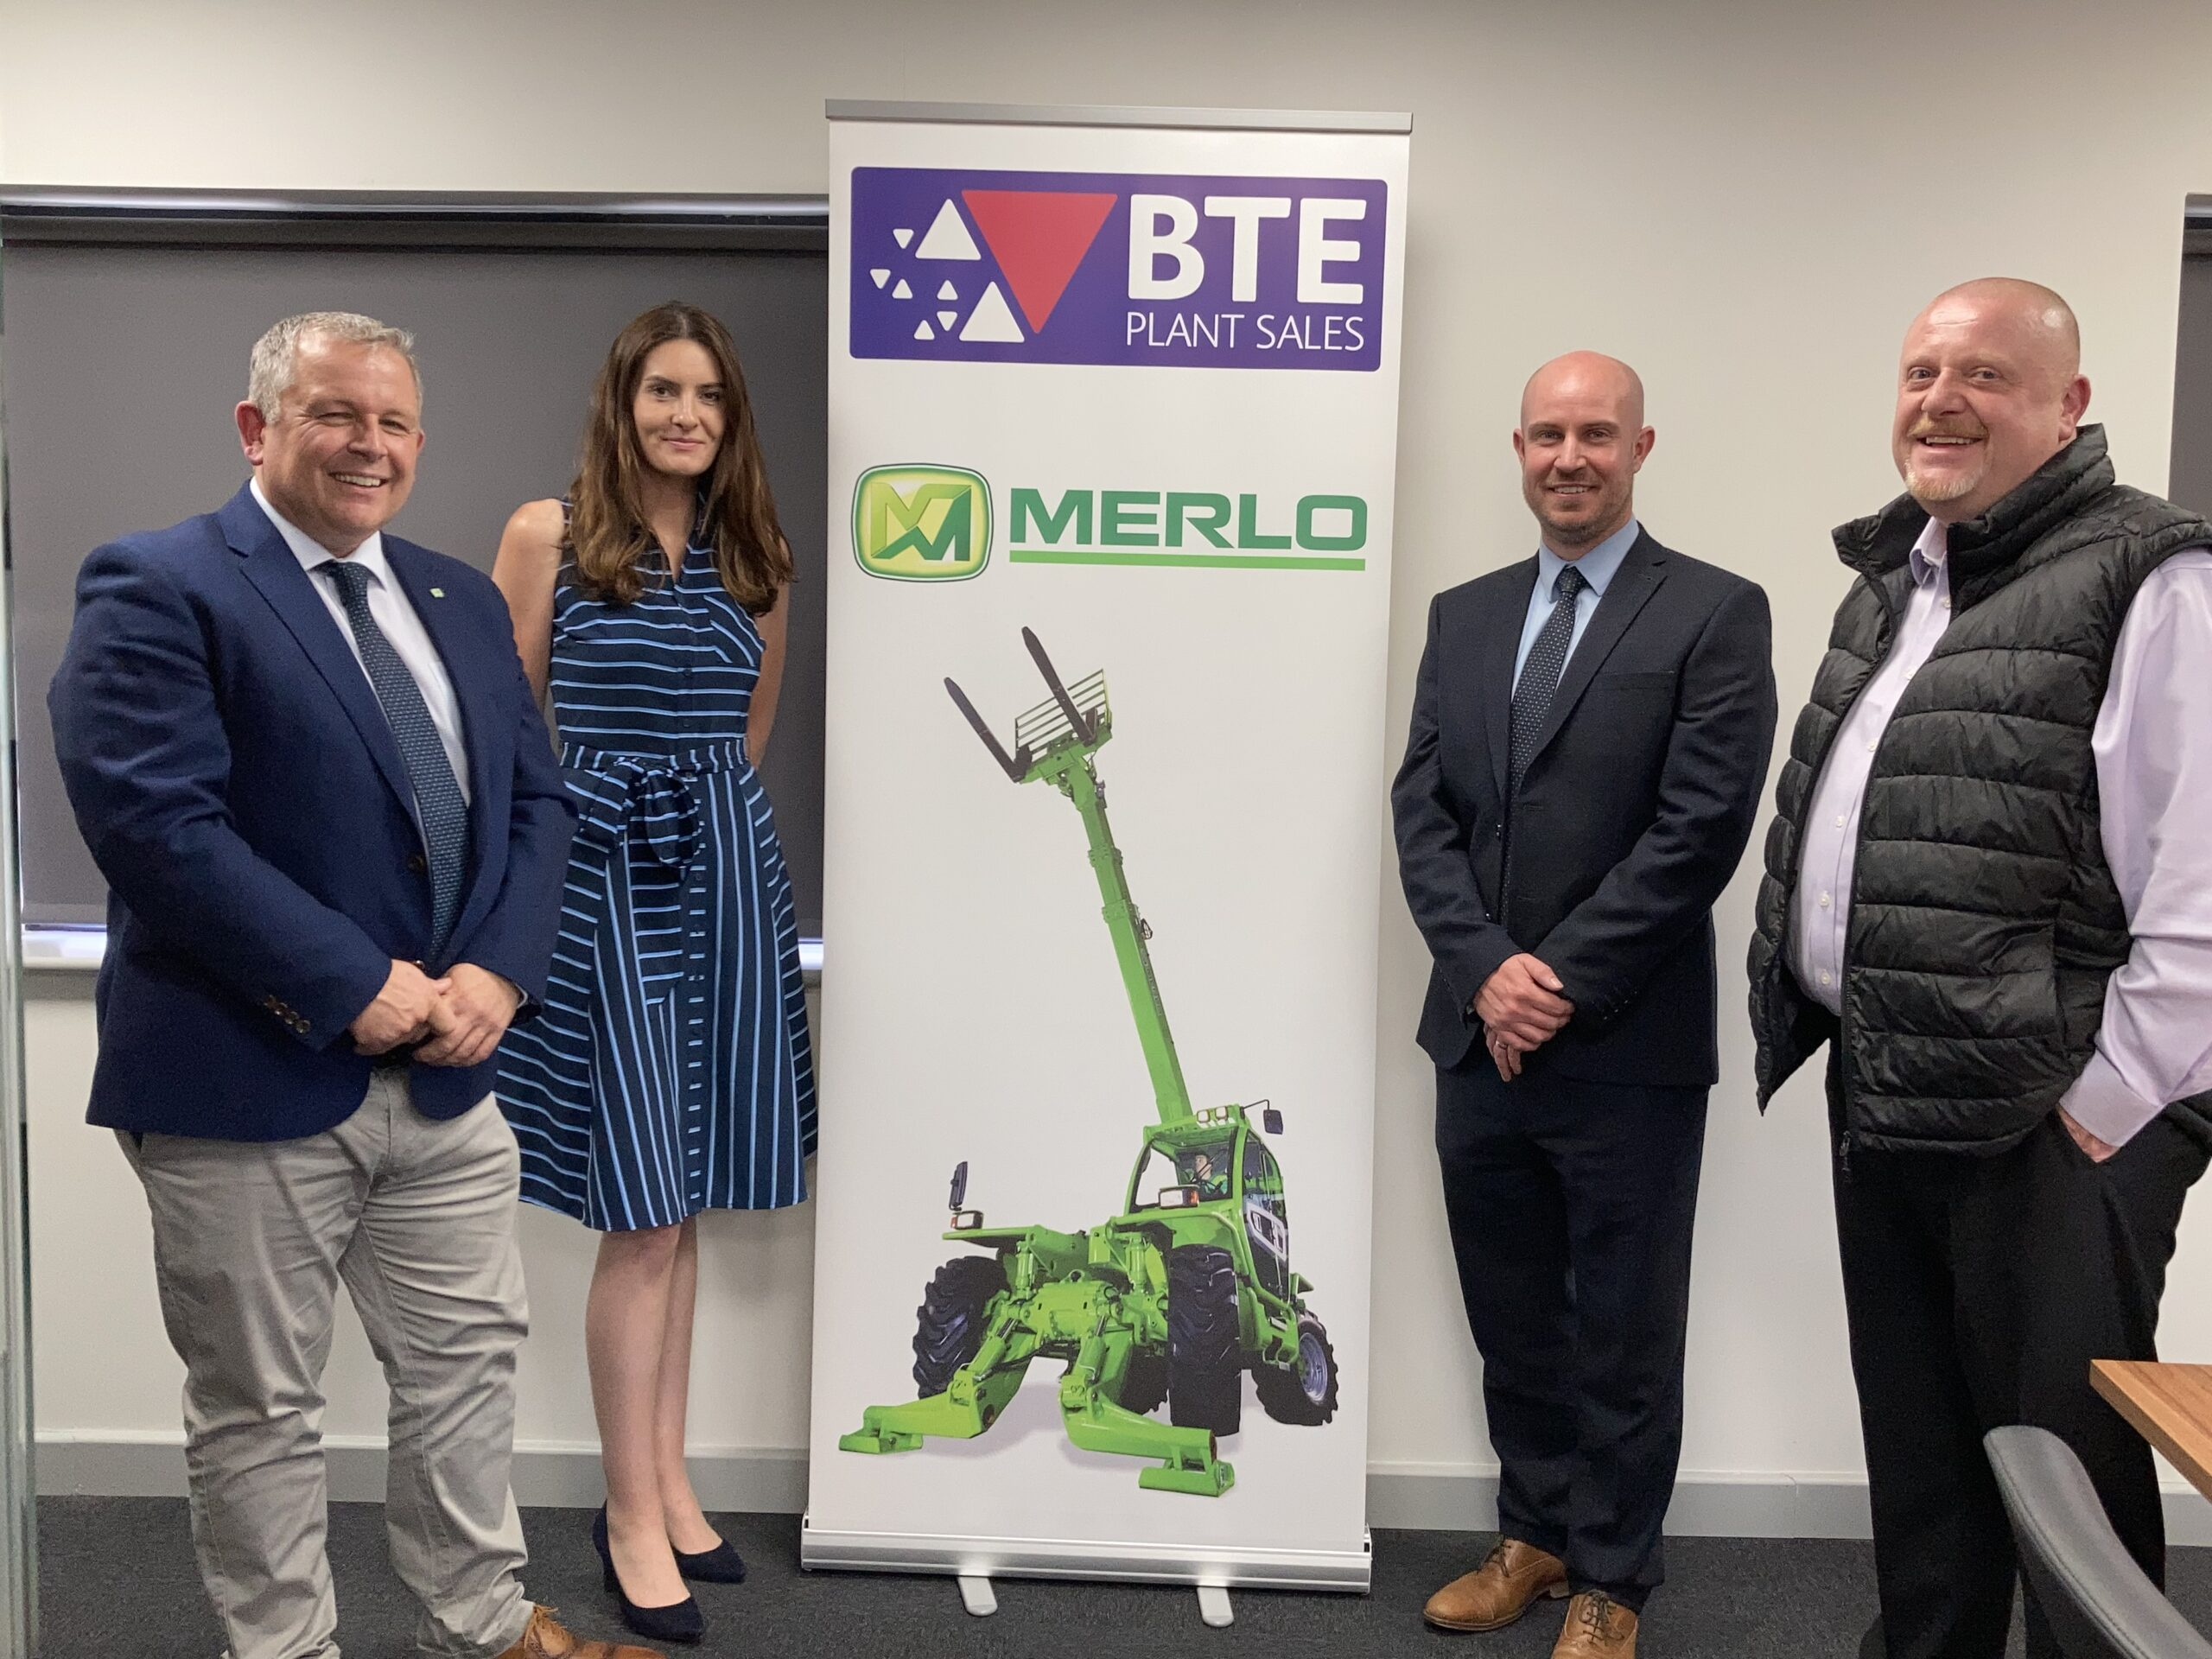 UK'S LARGEST INDEPENDENT CONSTRUCTION DEALER PARTNERS WITH MERLO